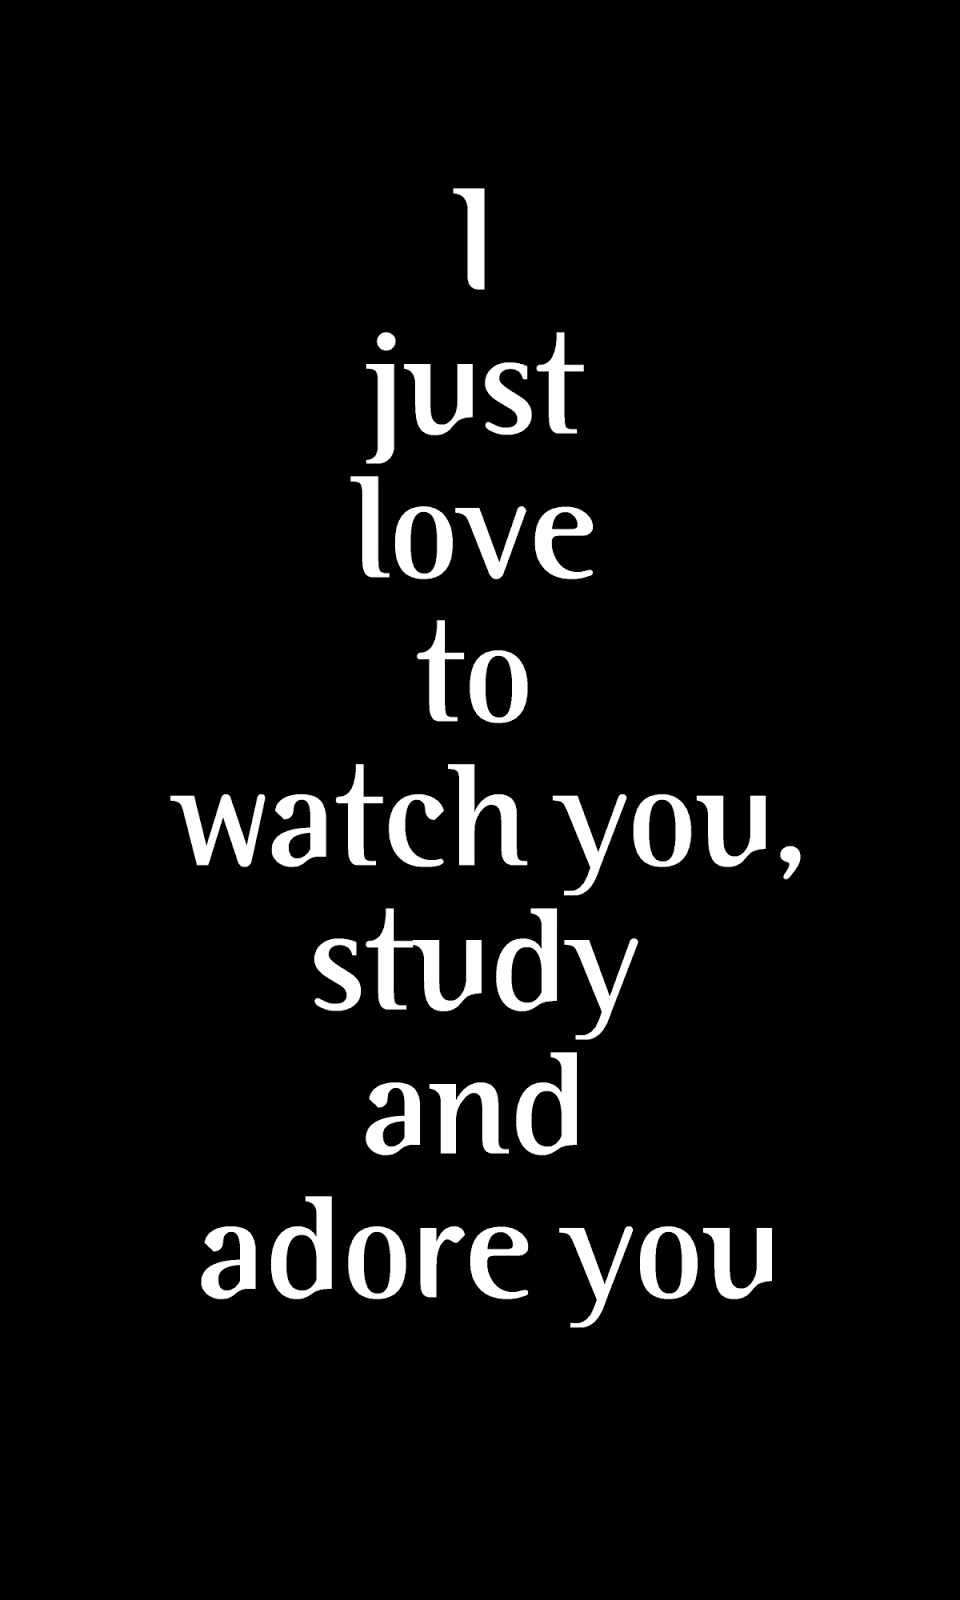 I just love to watch you, study and adore you